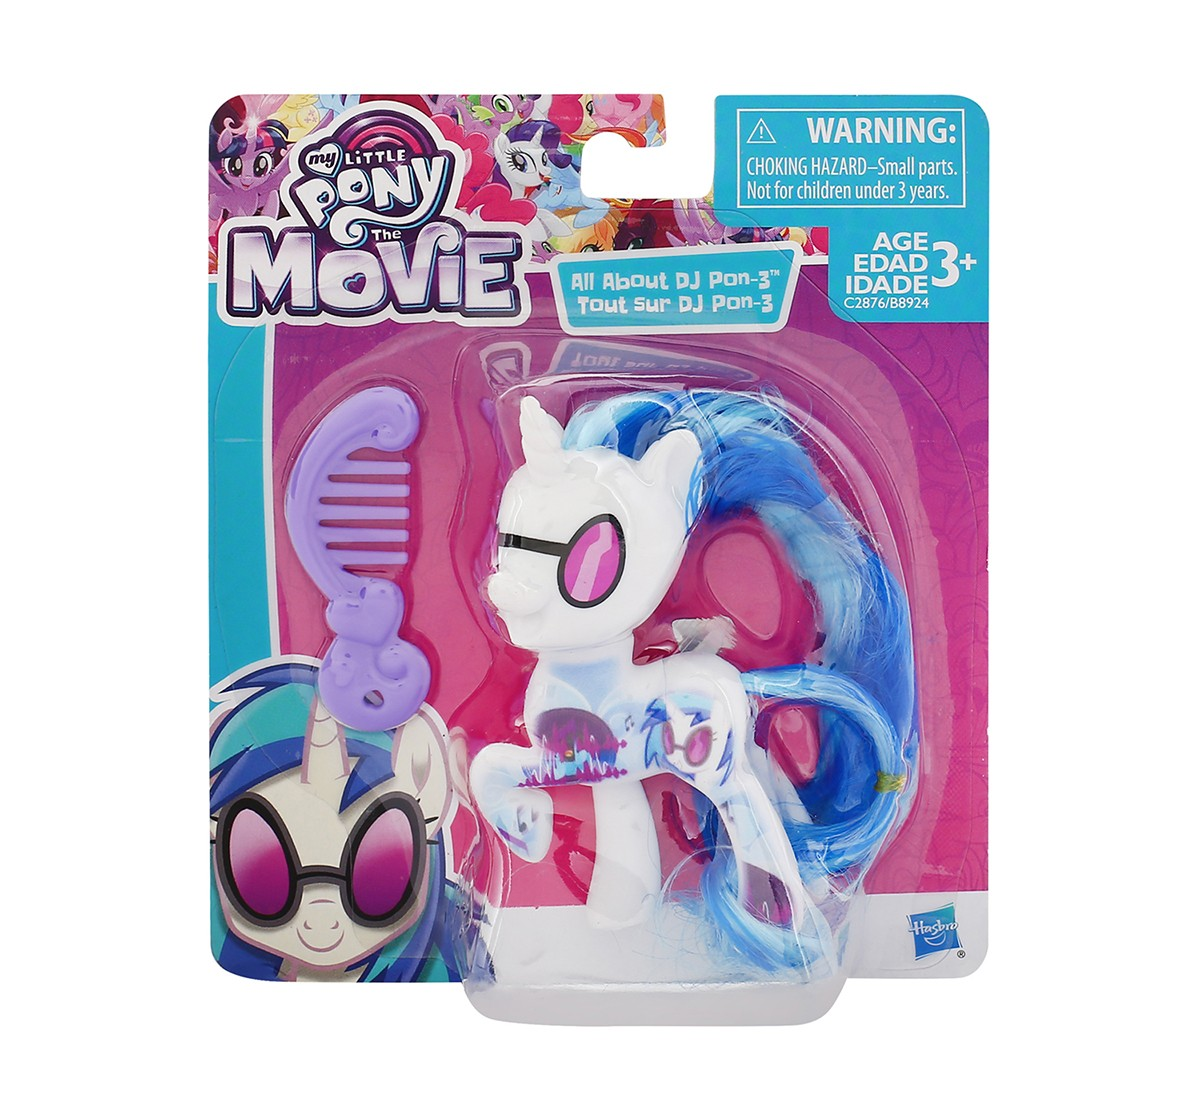 My Little Pony Friends Assorted Collectible Dolls for Kids age 3Y+